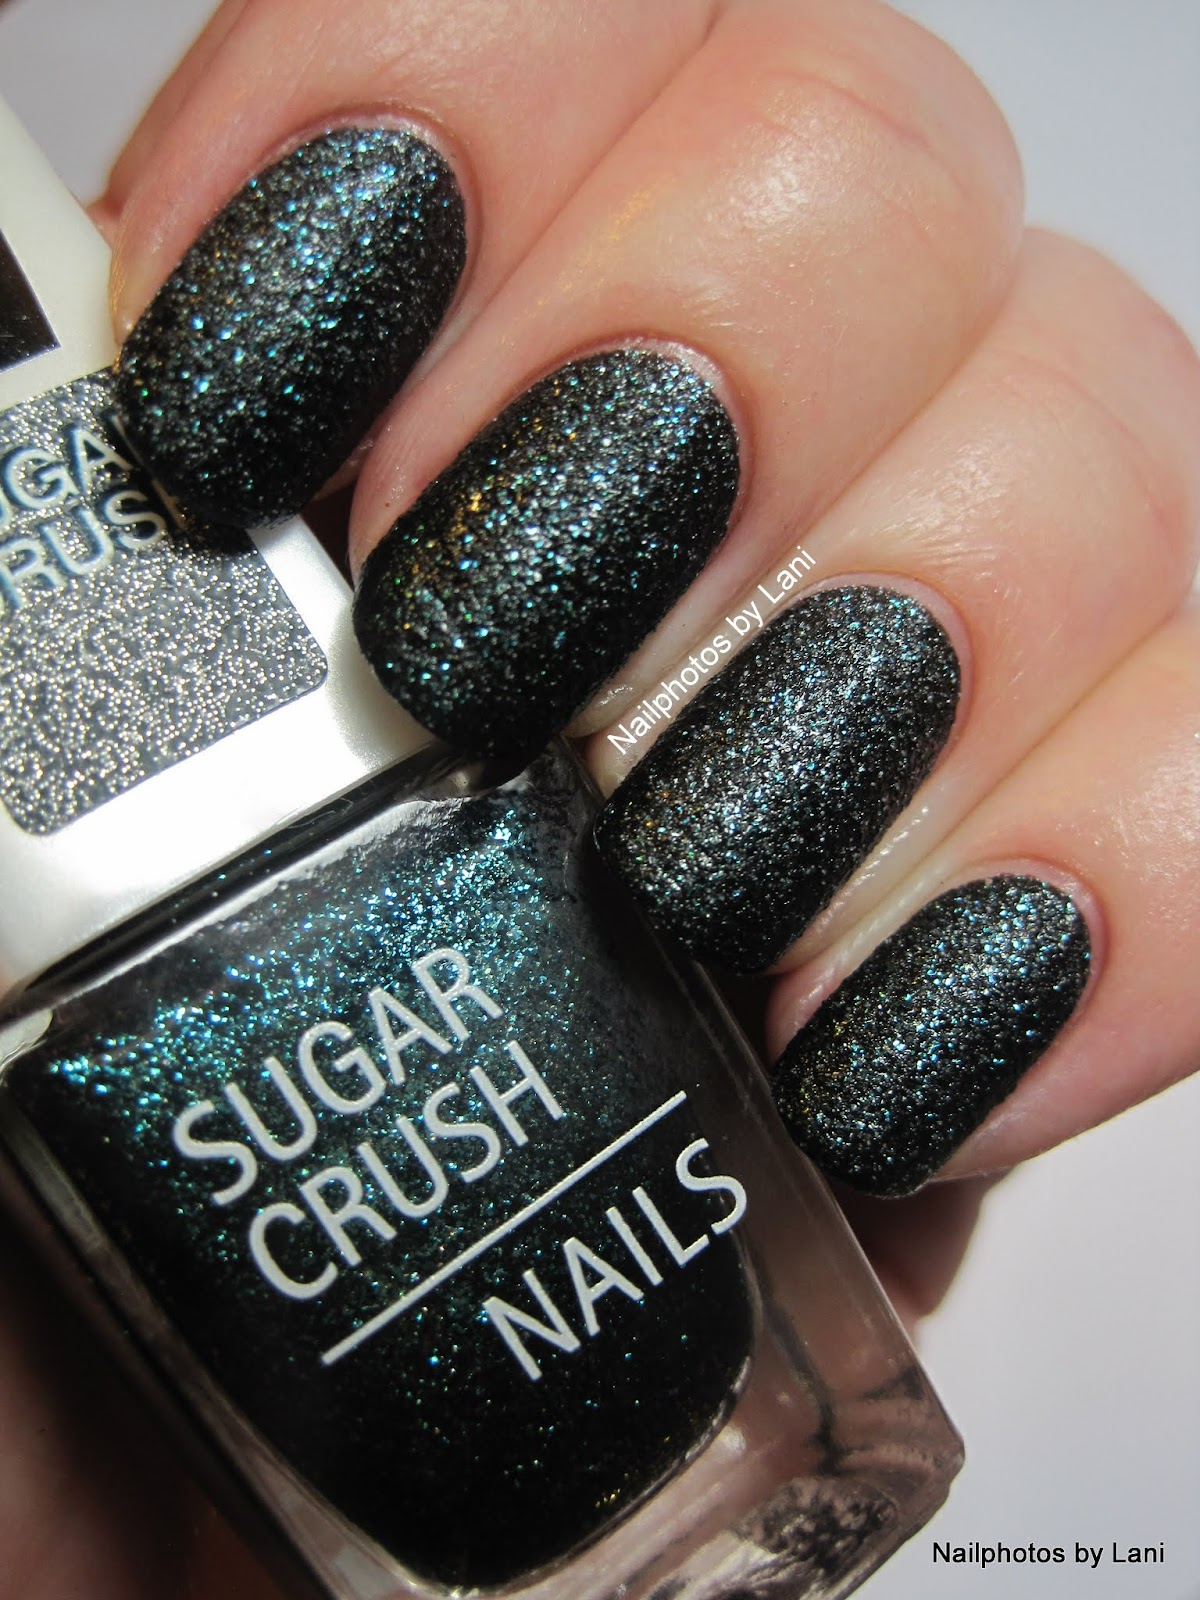 Nailphotos by Lani: Nail Polish Canada\'s 2013 HOLIDAY NAIL ART ...